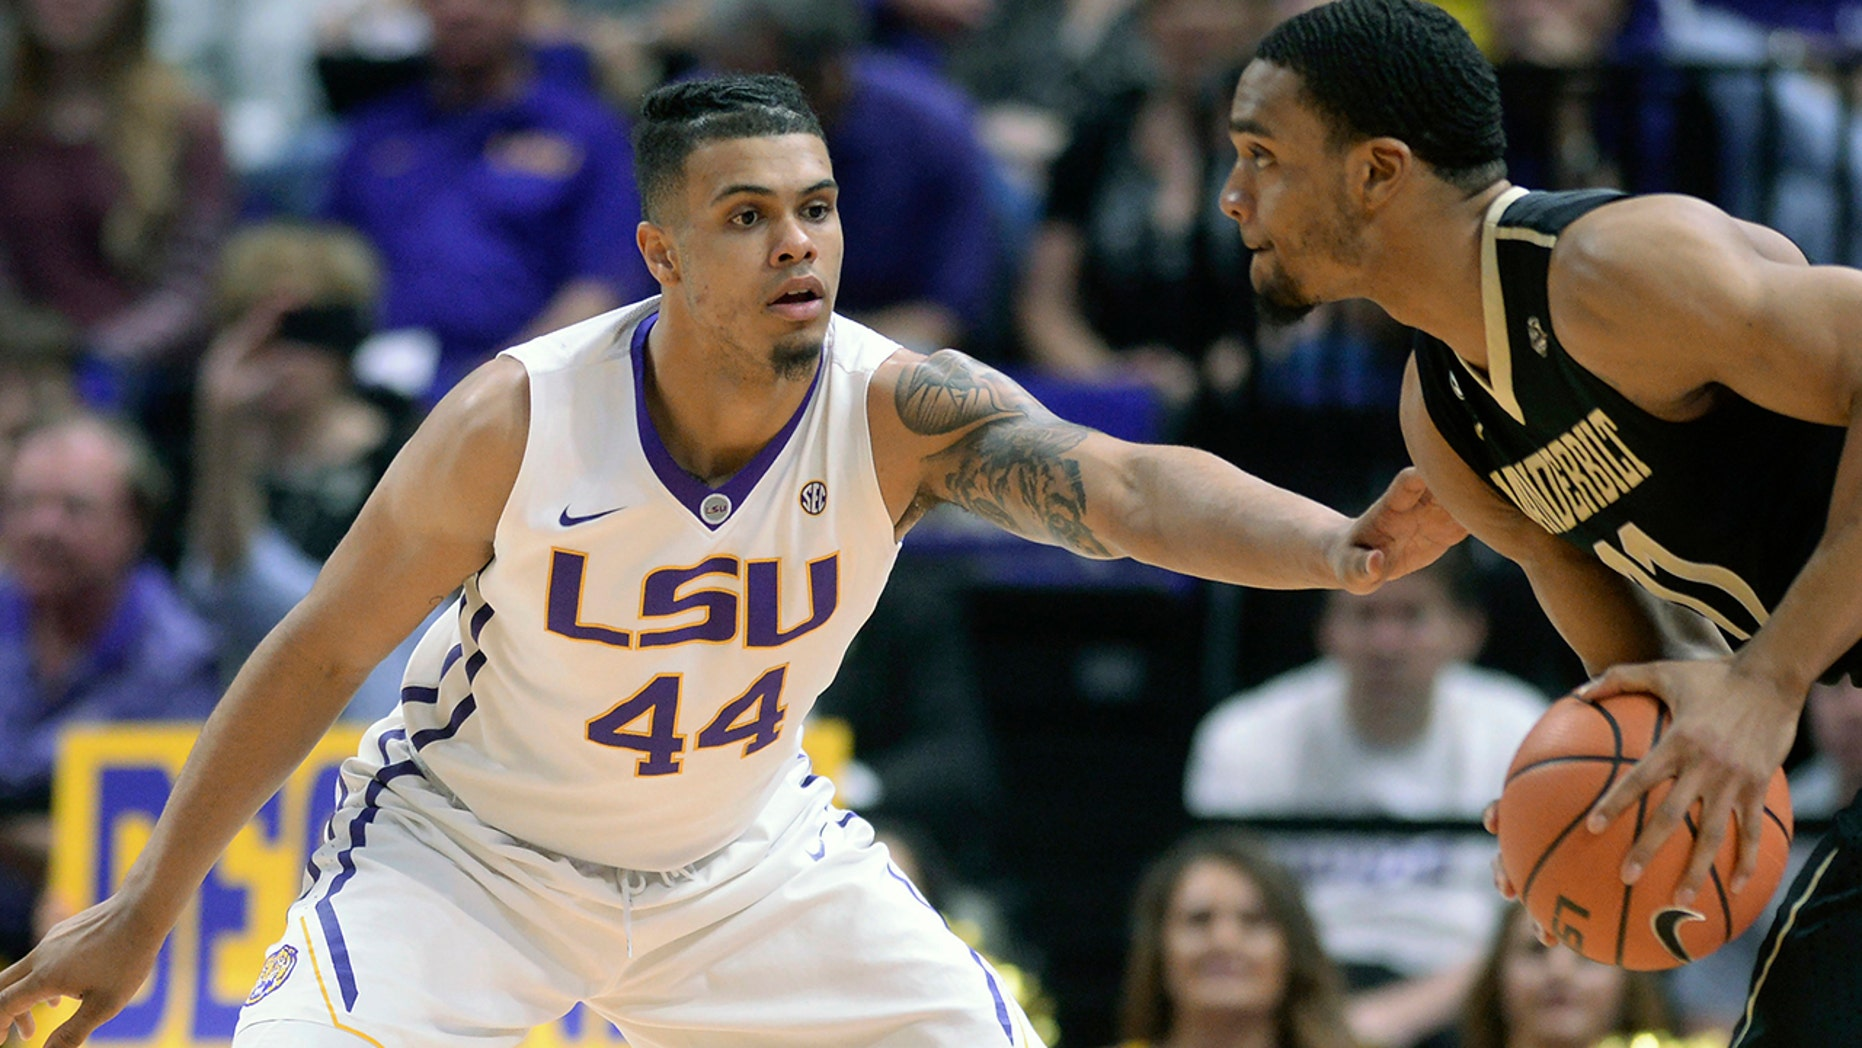 FILE - In this Feb. 20, 2018, file photo, LSU forward Wayde Sims (44) defends against Vanderbilt forward Jeff Roberson (11) during an NCAA college basketball game, in Baton Rouge, La. LSU basketball player Wayde Sims has died after he was shot near the campus of another school in Baton Rouge. Police say in a news release that the 20-year-old Sims was shot around 12:30 a.m. Friday, Sept. 28, 2018, near the campus of Southern University. Sgt. Don Coppola Jr. said Sims was taken to a hospital with an apparent gunshot wound and died. (Hilary Scheinuk/The Advocate via AP, File)